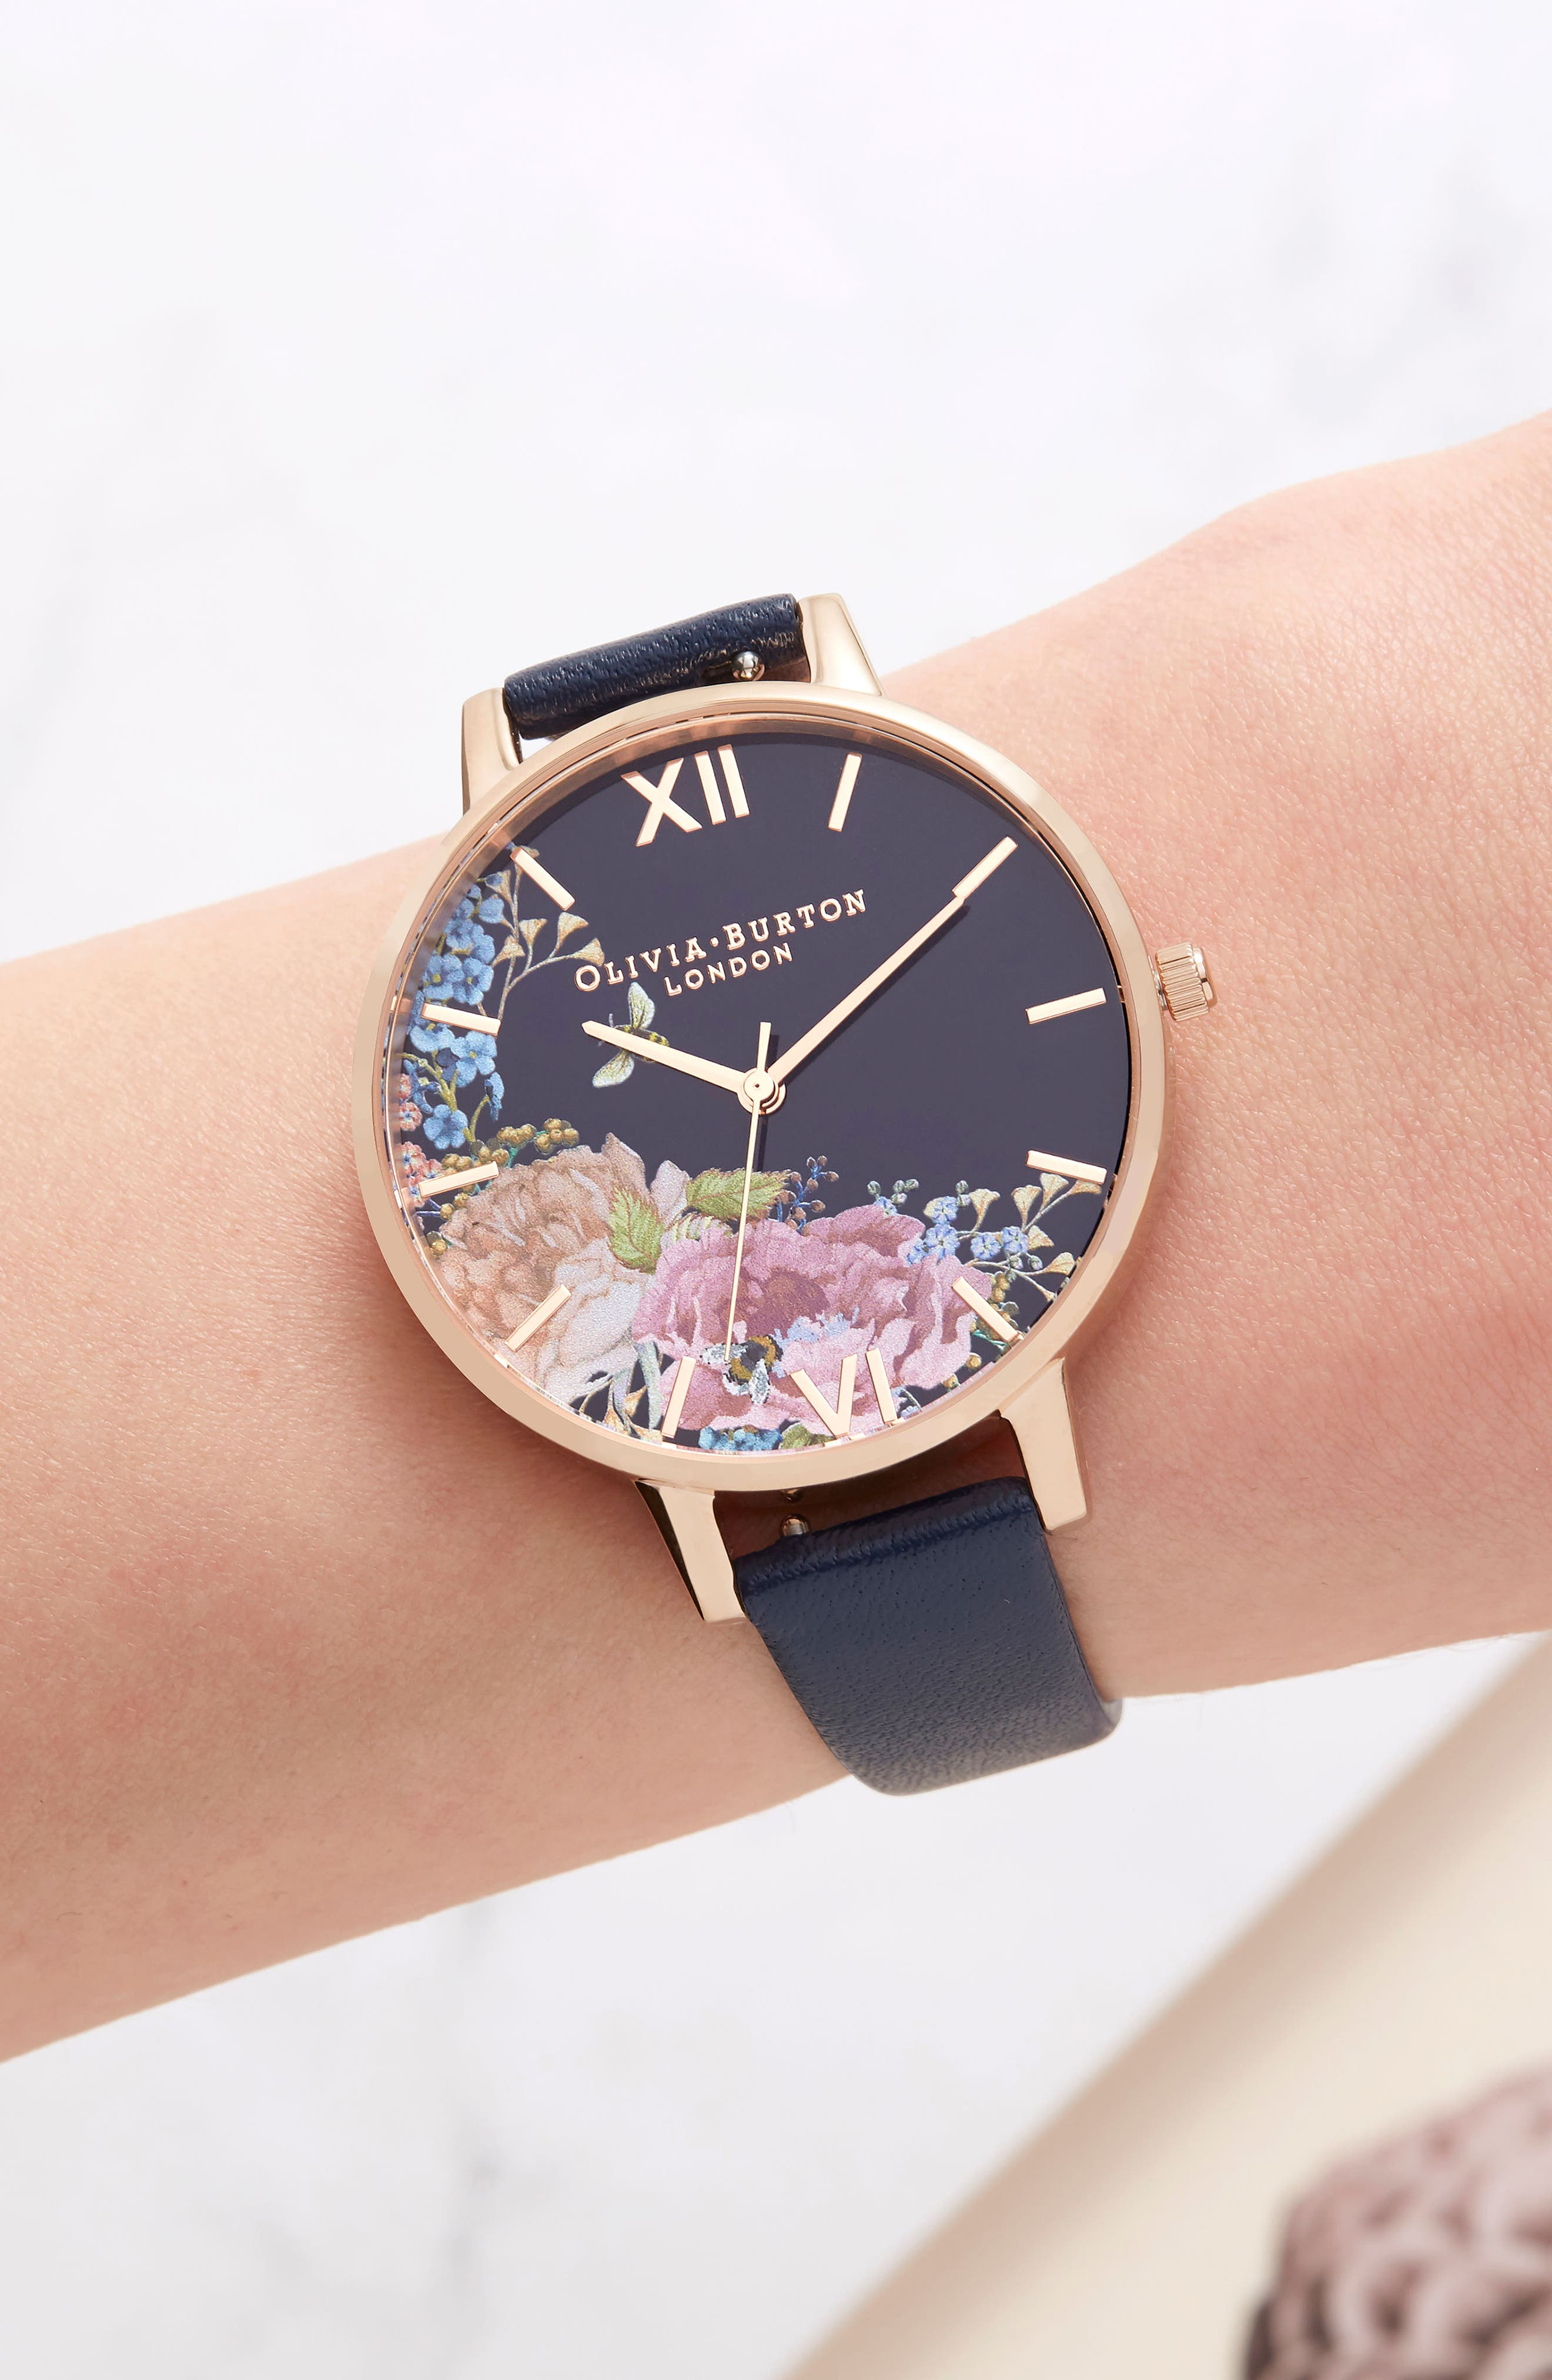 Enchanted Garden Leather Strap Watch, 38mm,                             Alternate thumbnail 7, color,                             NAVY/ FLORAL/ ROSE GOLD